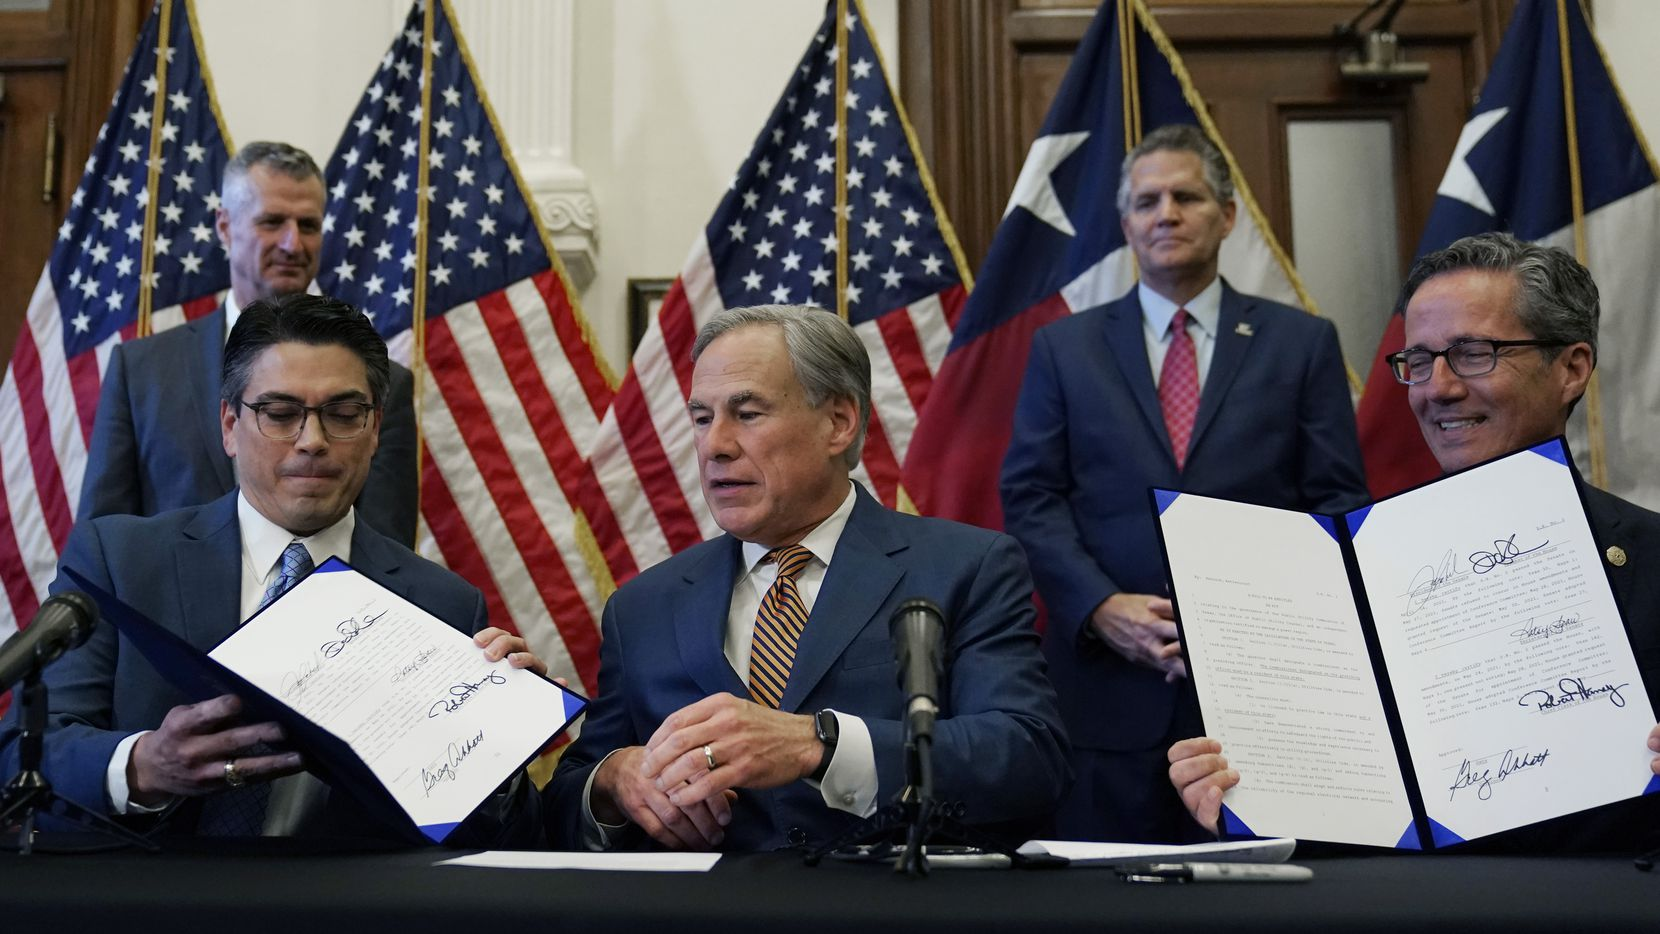 With the help of Marshall GOP state Rep. Chris Paddie, left, and North Richland Hills GOP state Sen. Kelly Hancock, right, Gov. Greg Abbott, center, displays two electricity grid bills he signed Tuesday. The bills overhaul the Electric Reliability Council of Texas (ERCOT) and weatherize and improve the reliability of the state's power grid.